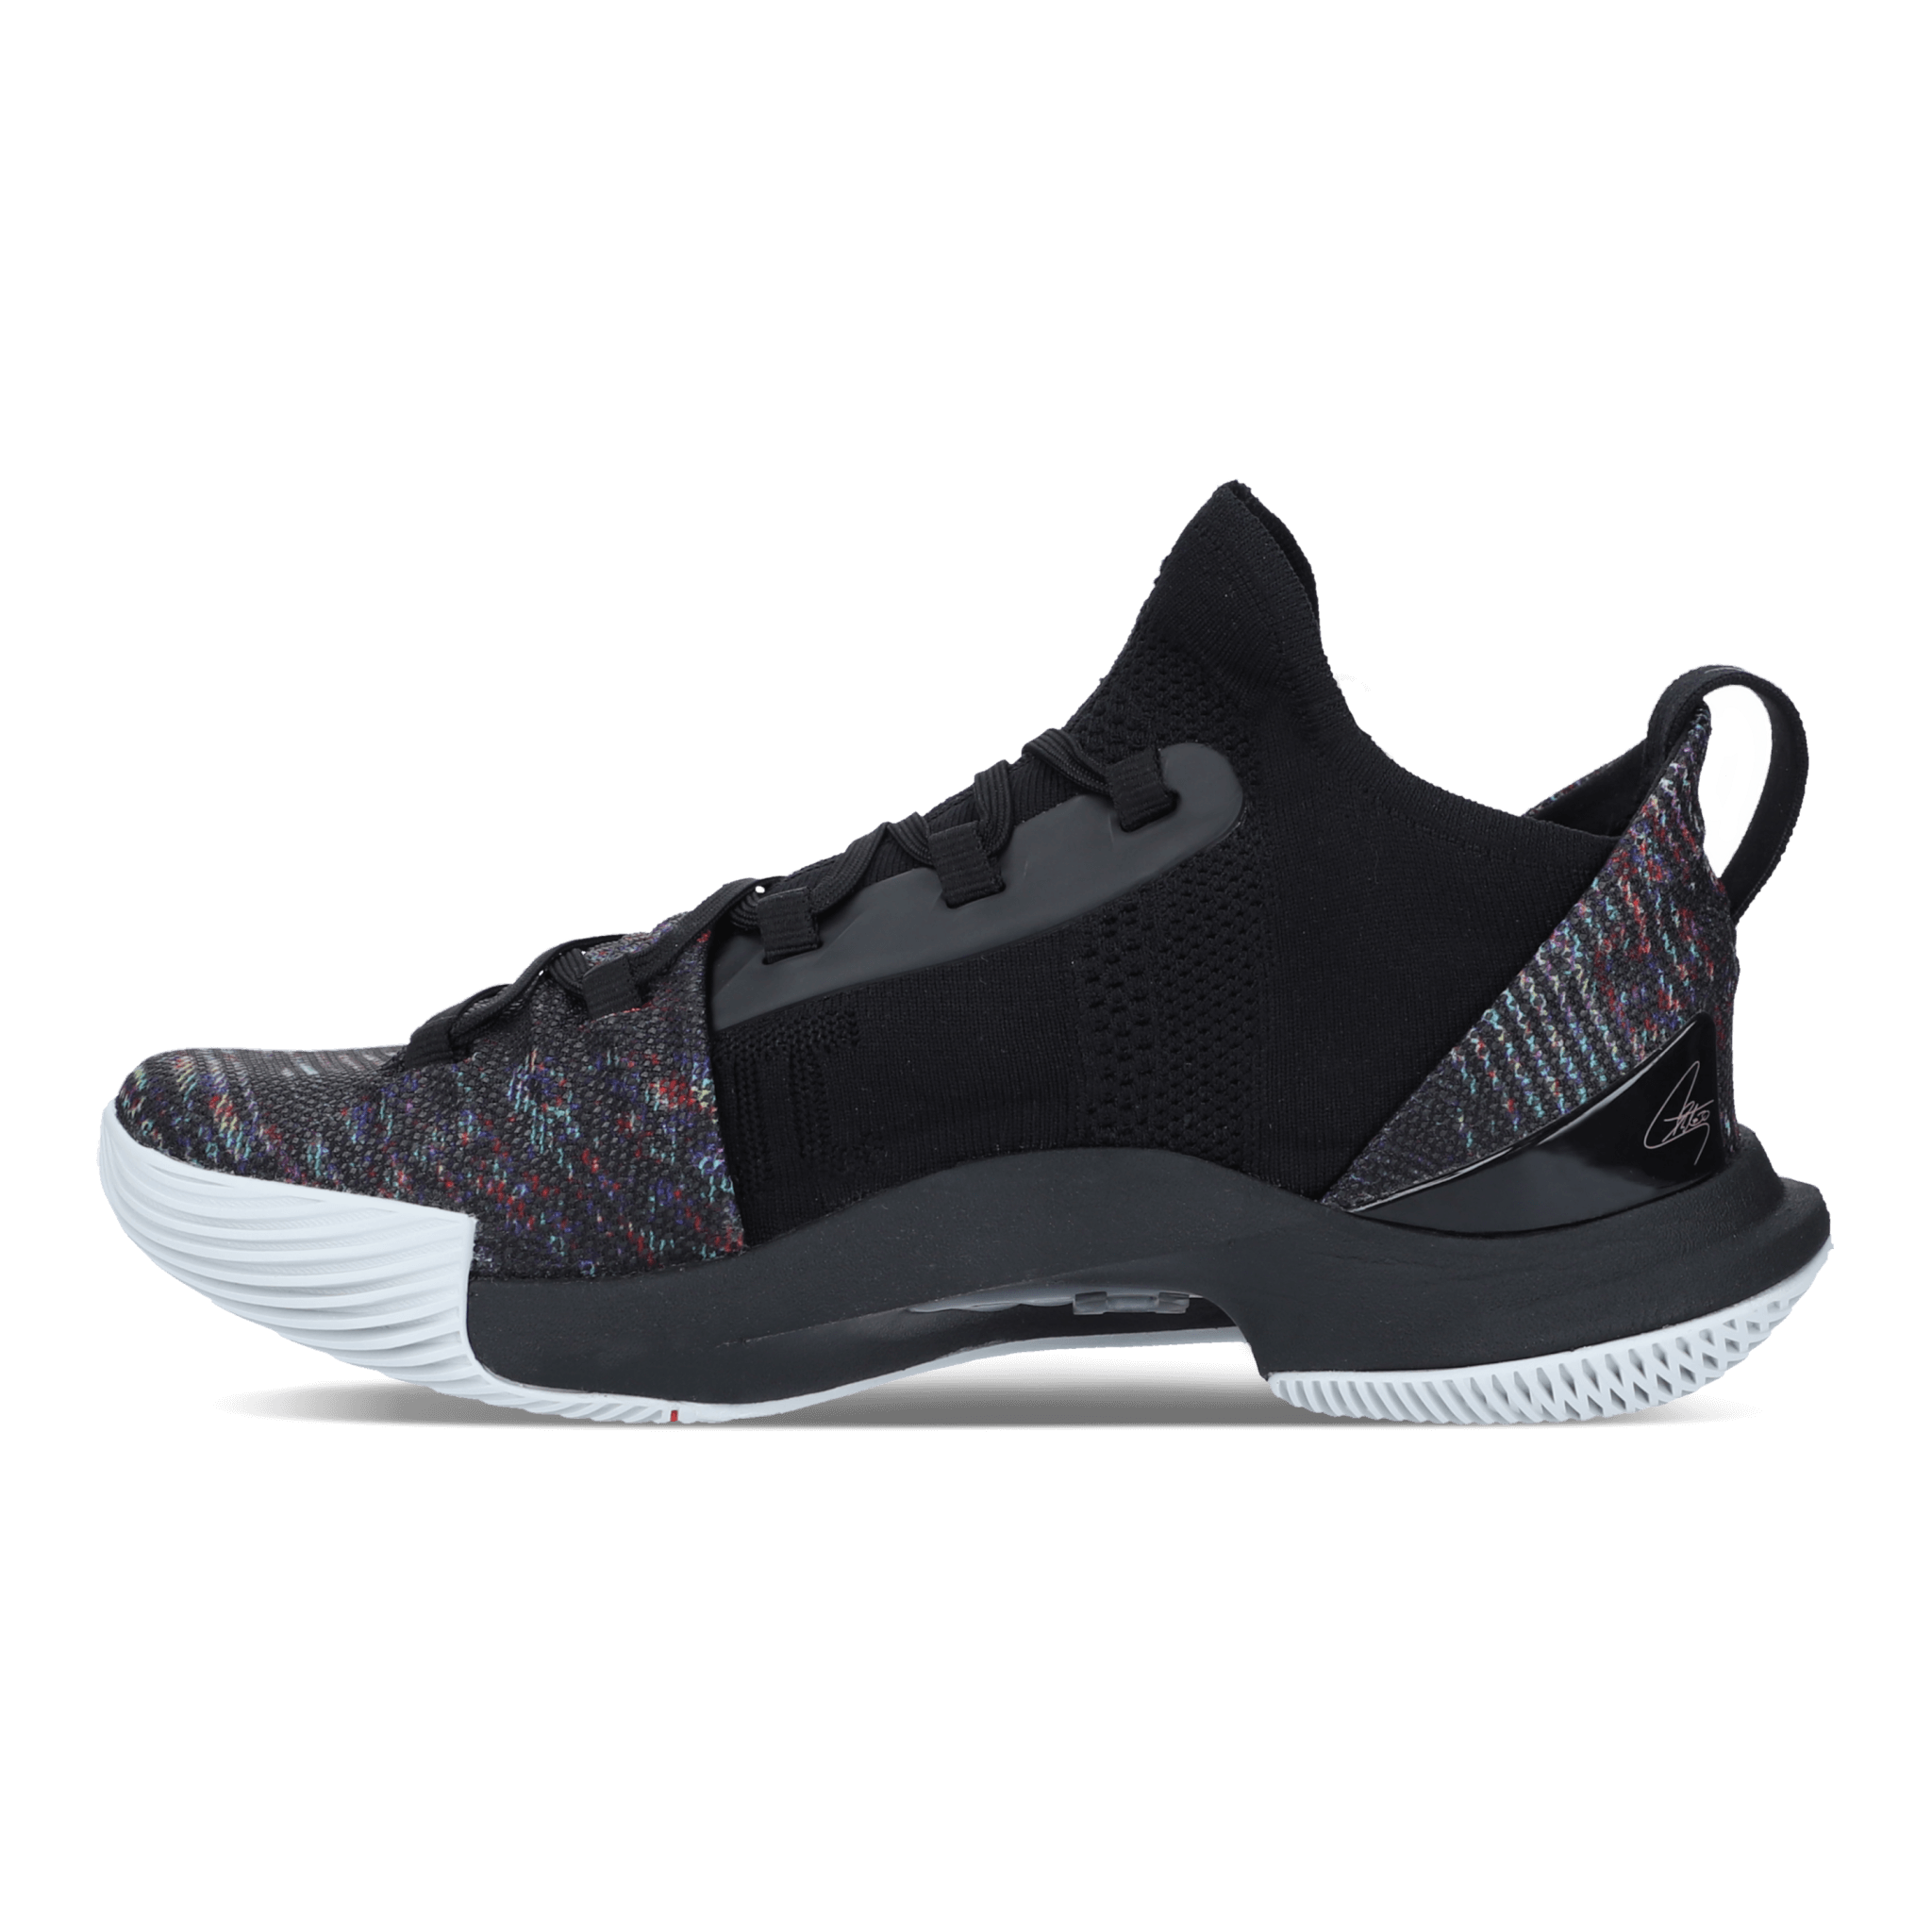 c78424923c9 Under Armour Curry 5 Performance Review